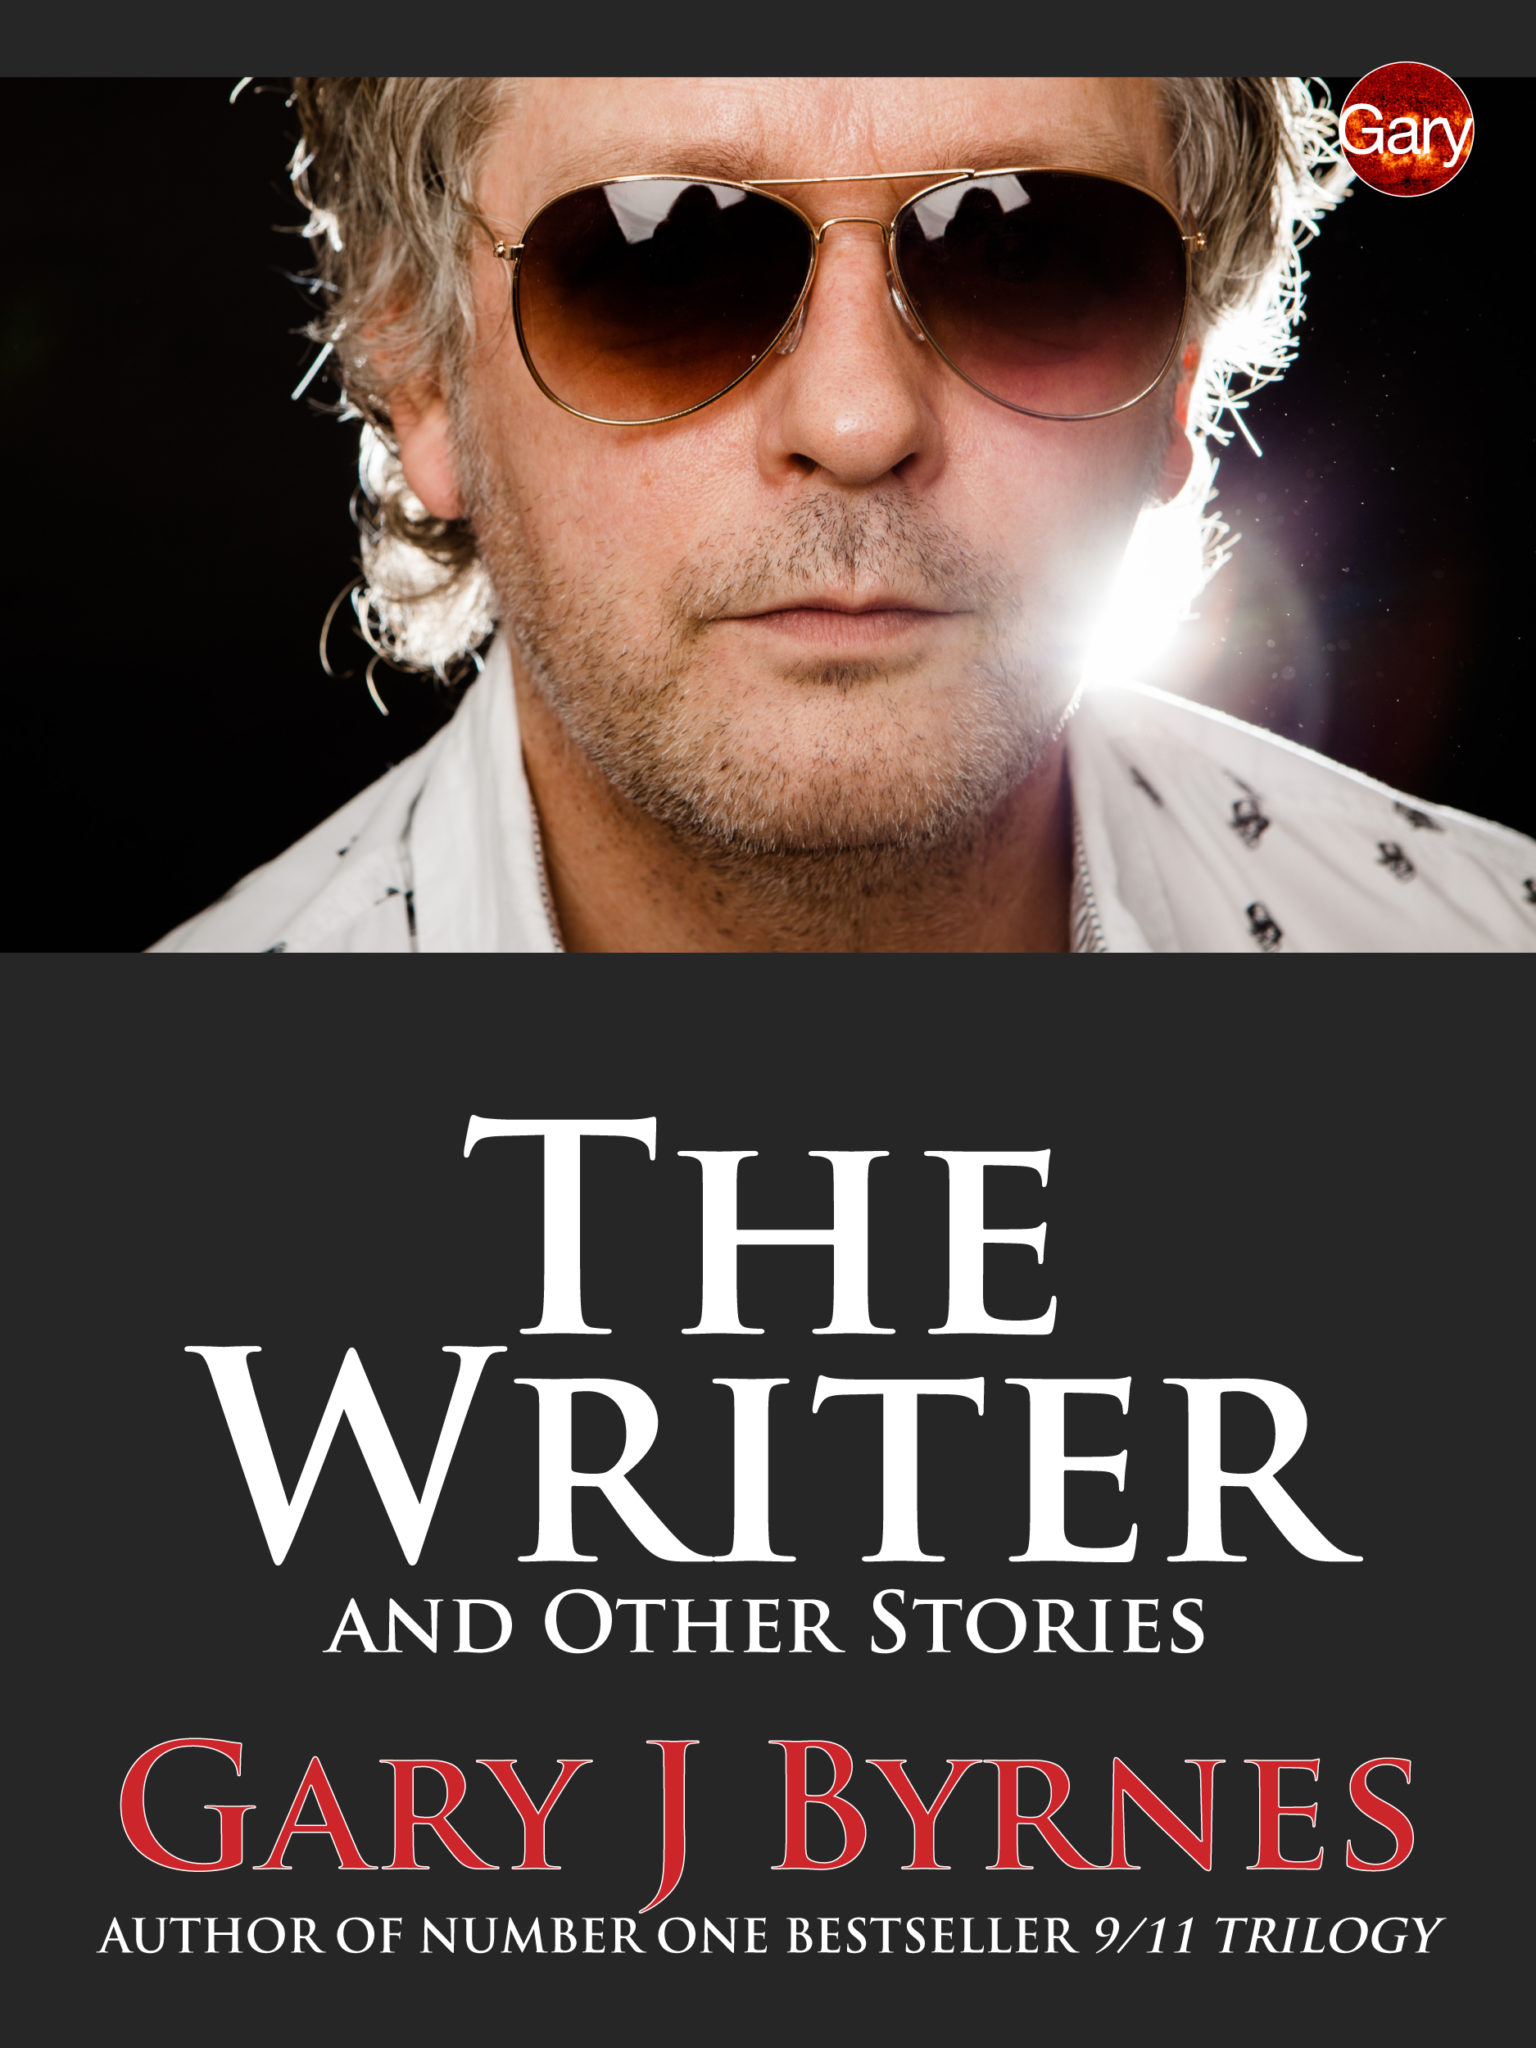 Gary-J-Byrnes-The-Writer-short-story-collection-cover